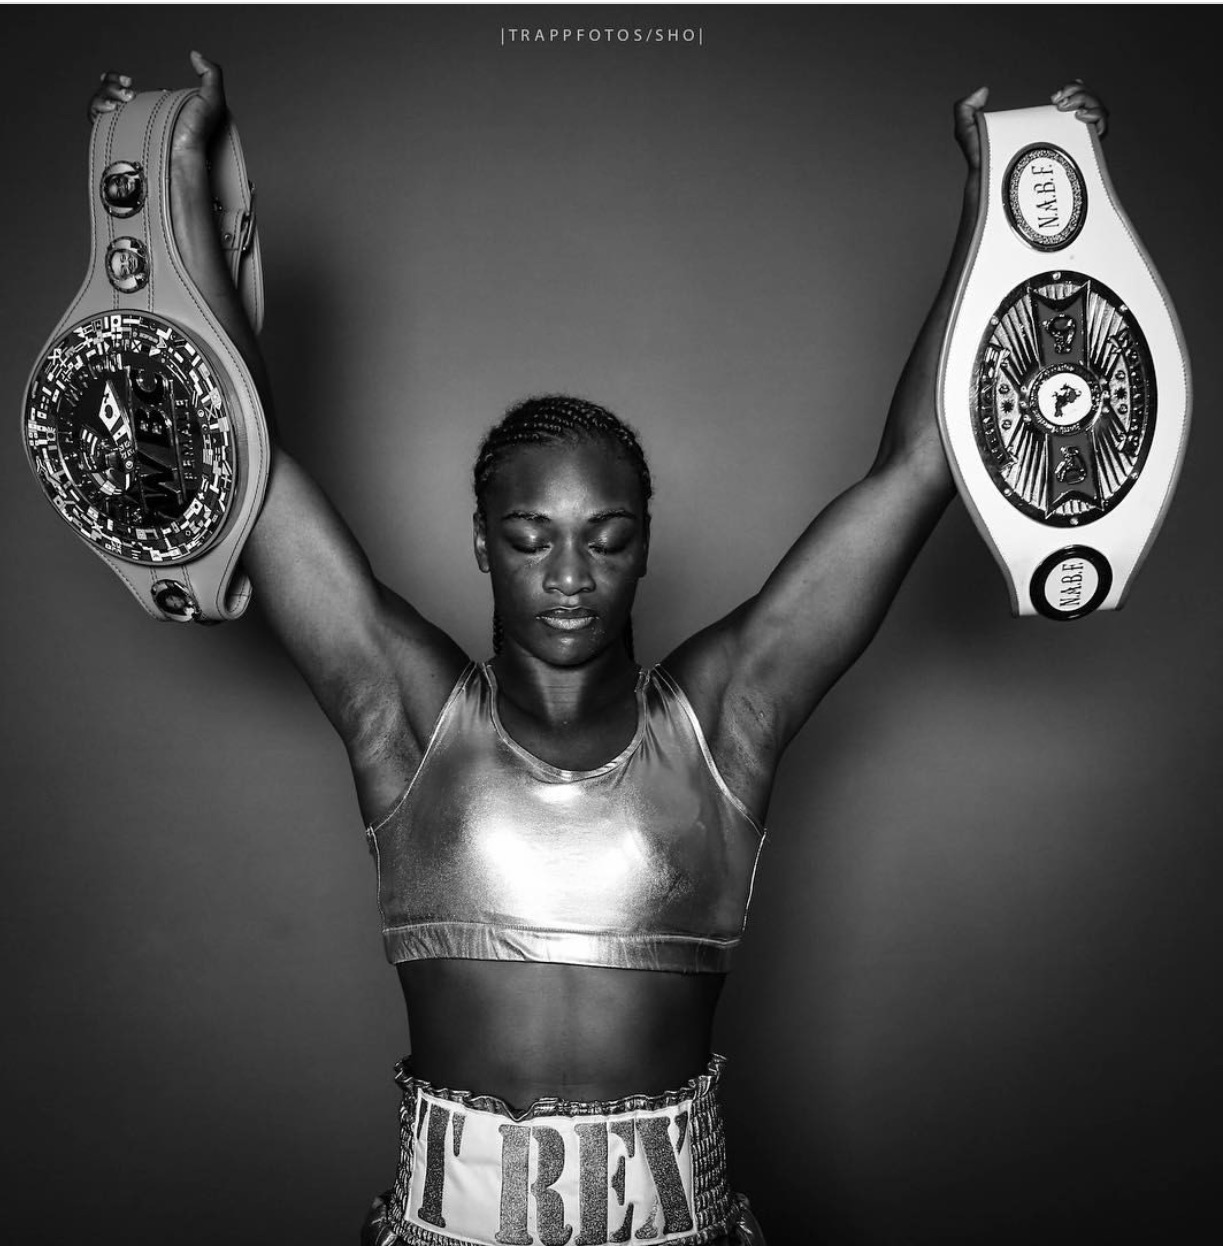 Claressa Shields hopes to capture WBC and IBF Super Middleweight titles tonight against Nikki Adler in just her fourth professional bout. Photo: Stephanie Trapp @trappfotos